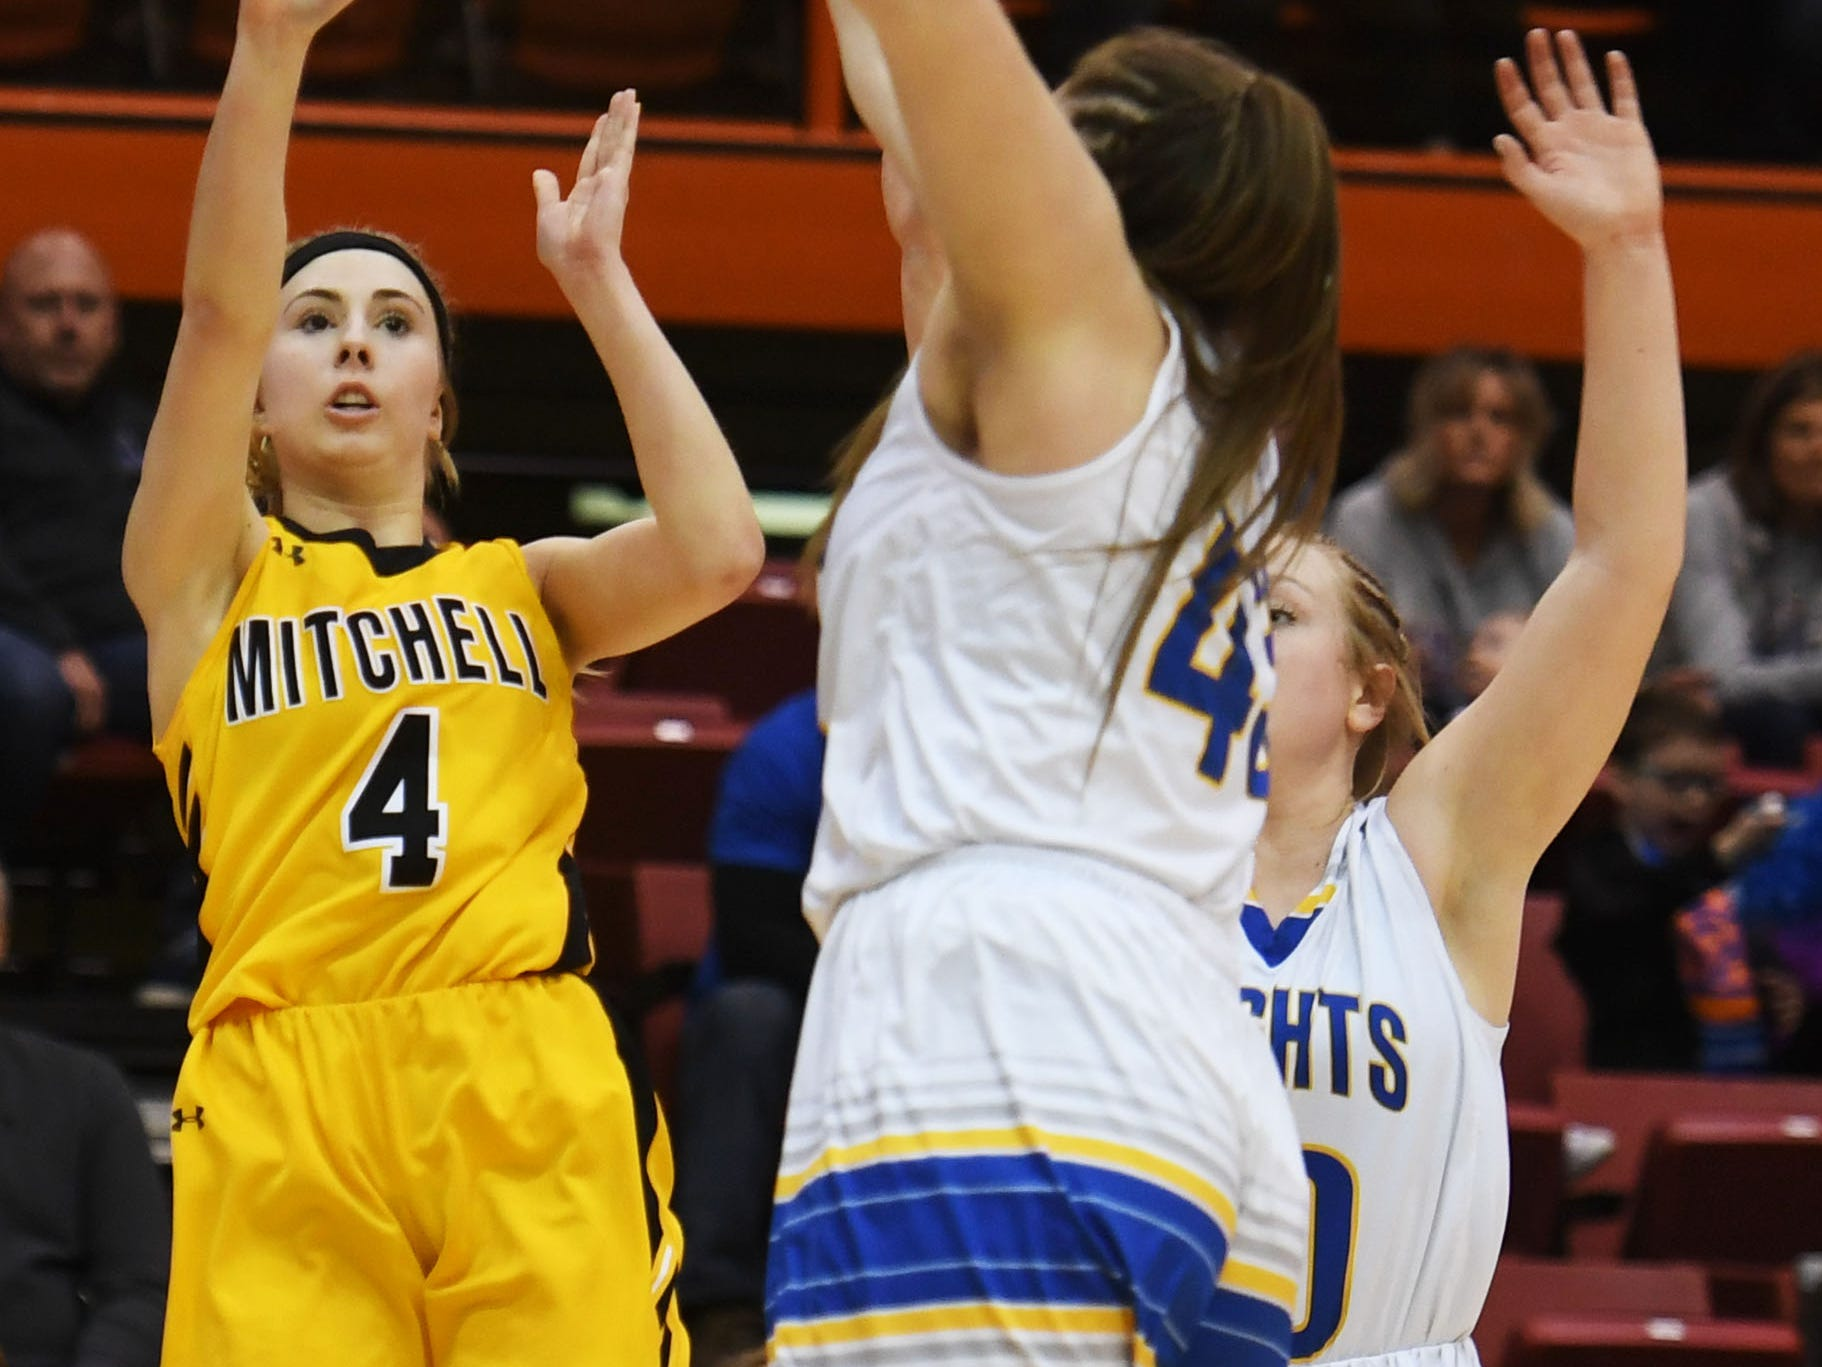 Mitchell's Tess Limberg takes a shot against O'Gorman in the Class AA quarterfinals Thursday, March 14, in Rapid City.